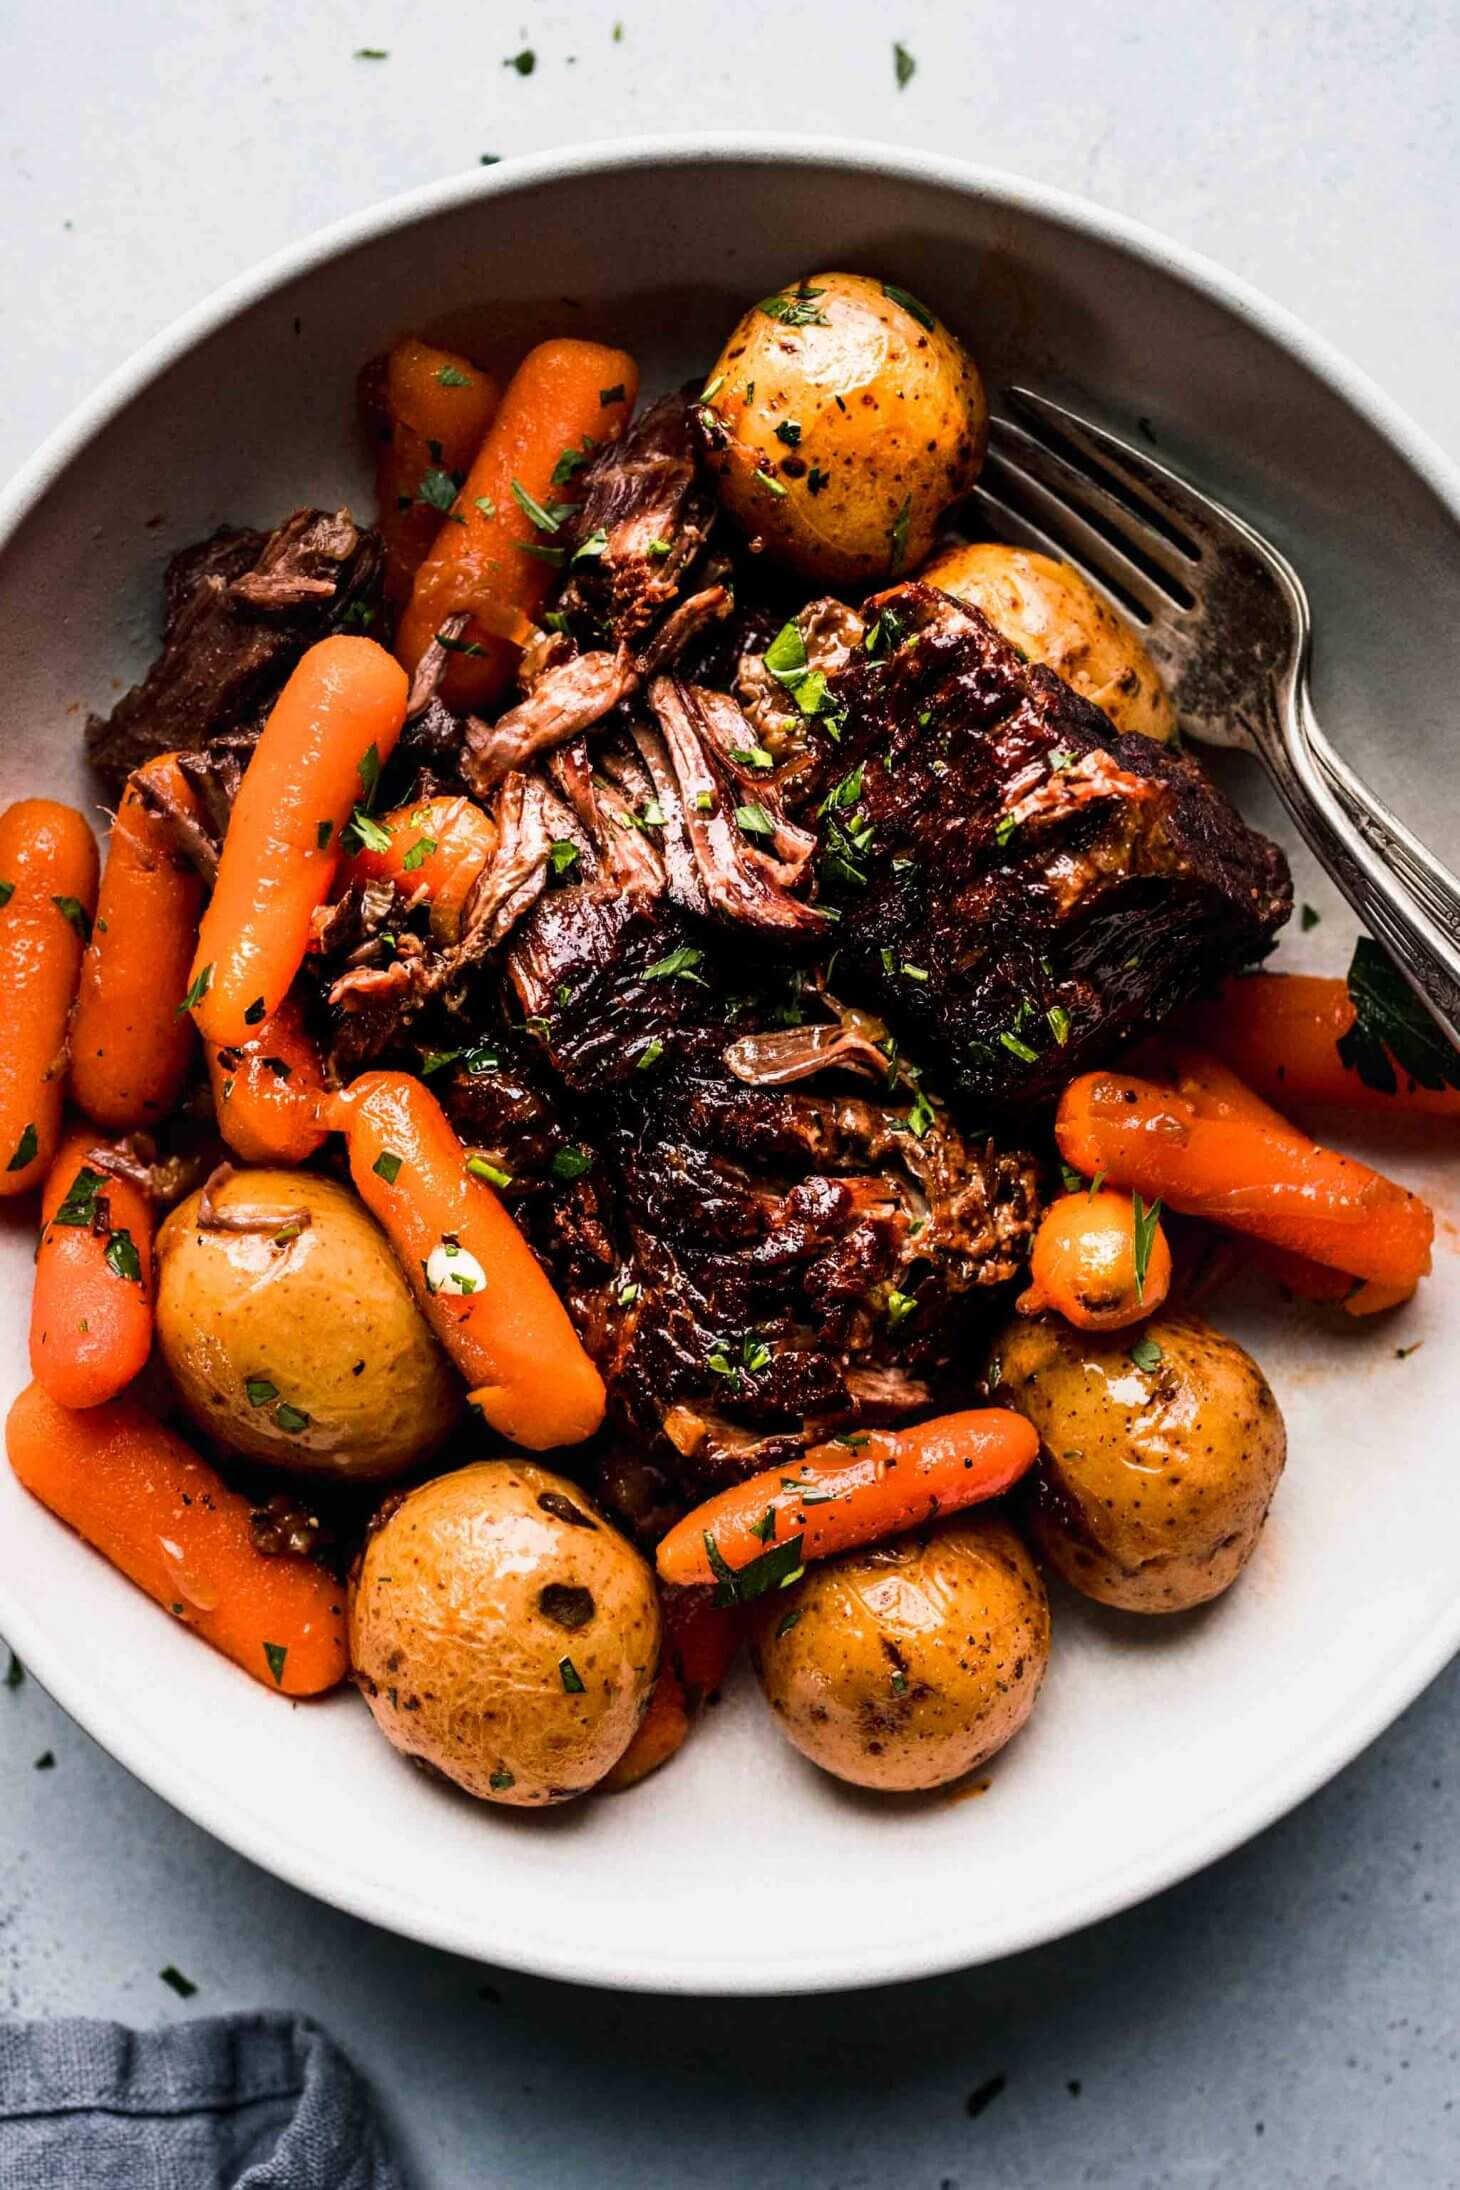 Pot roast, potatoes and carrots arranged in white bowl.